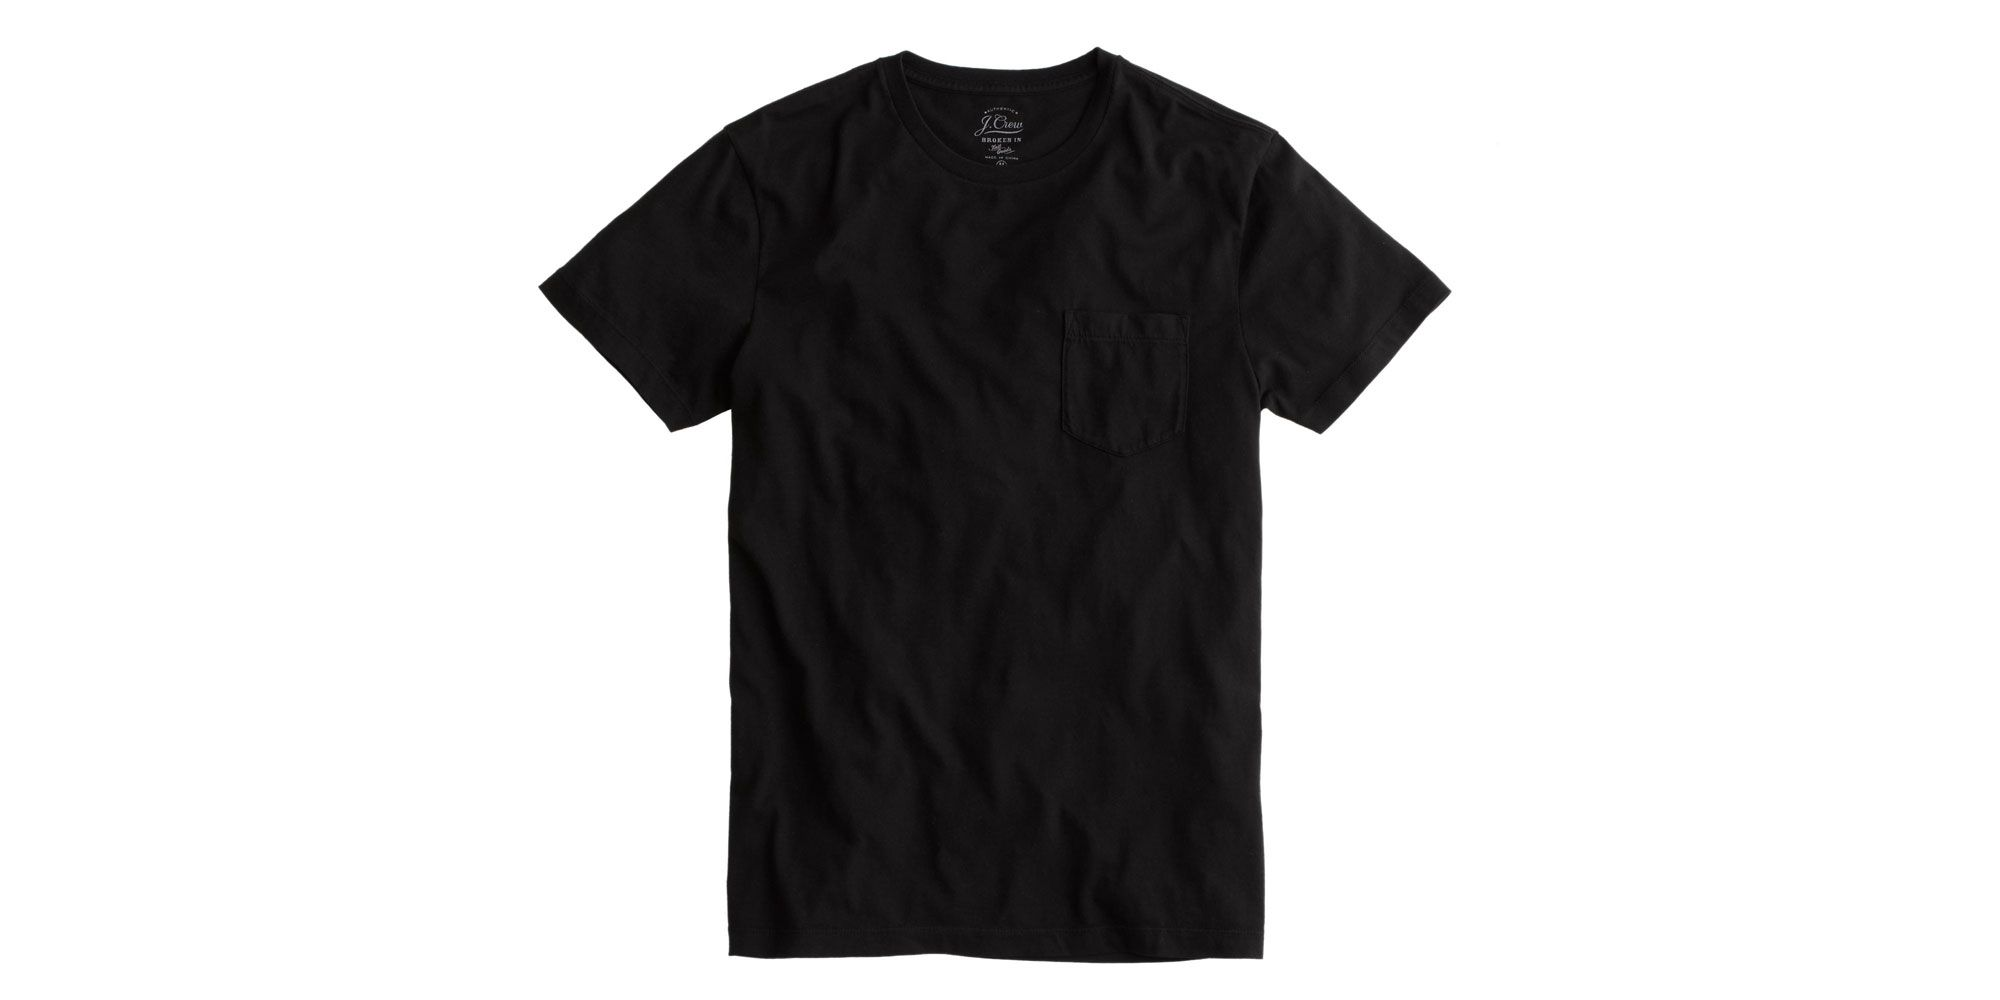 Black t shirt under button down - We Talked To The Former Director Of Men S Fashion At Bergdorf Goodman To Get His Opinion On The Best Black T Shirts